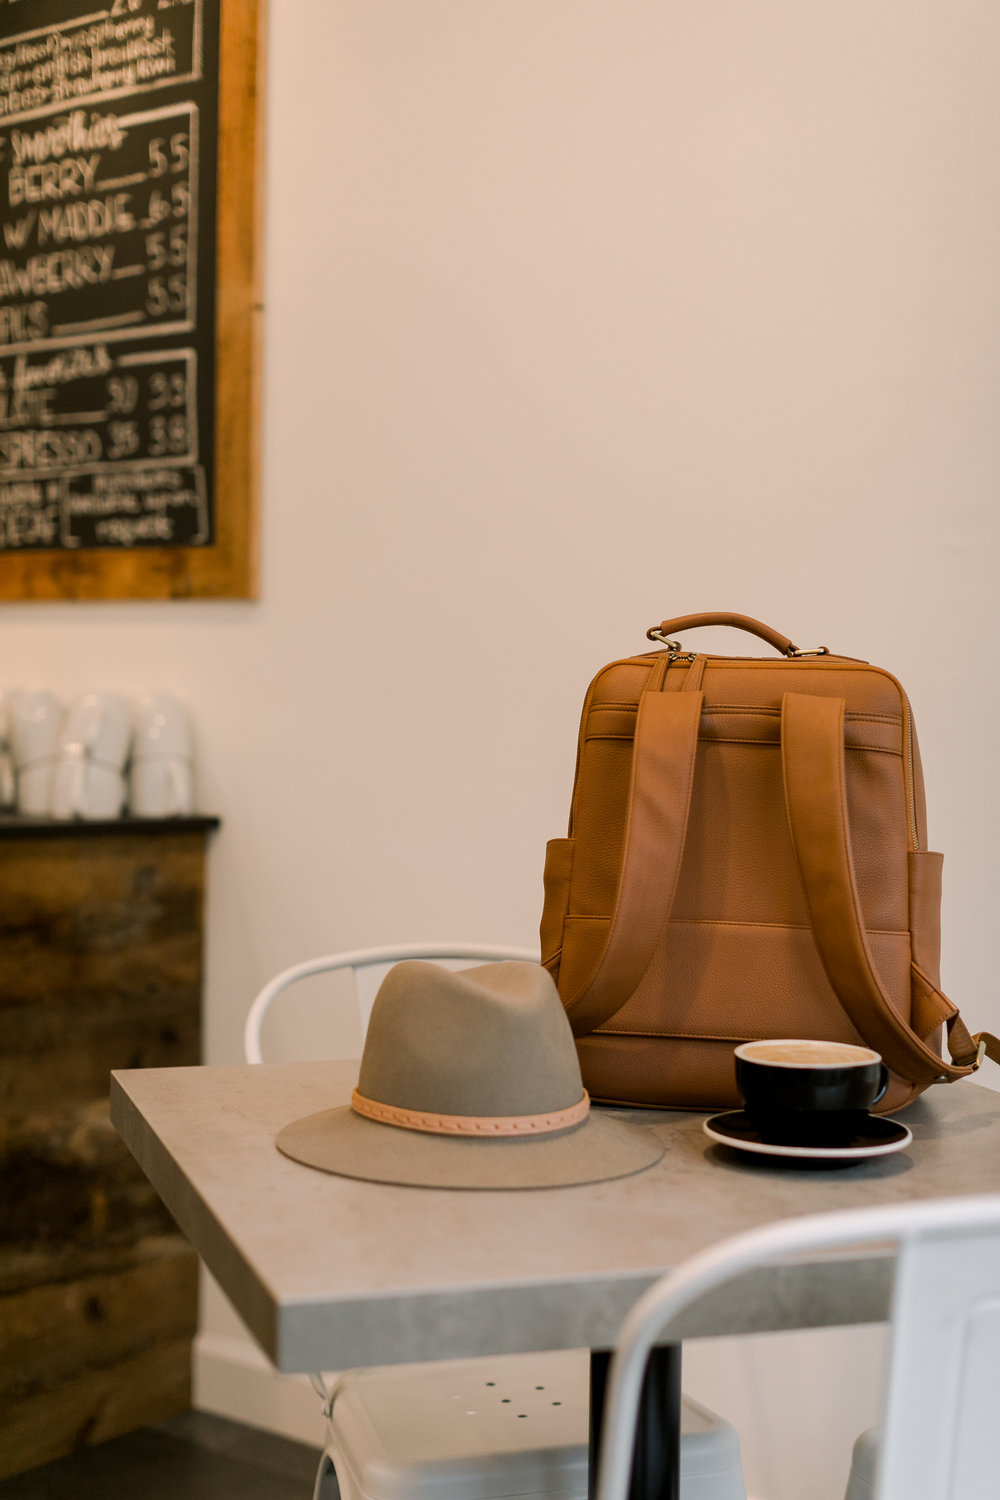 Lyra Backpack, Kamrette Leather Backpack, Professional Wedding Photographer Memphis, Slate Coffee Shop, Lititz PA